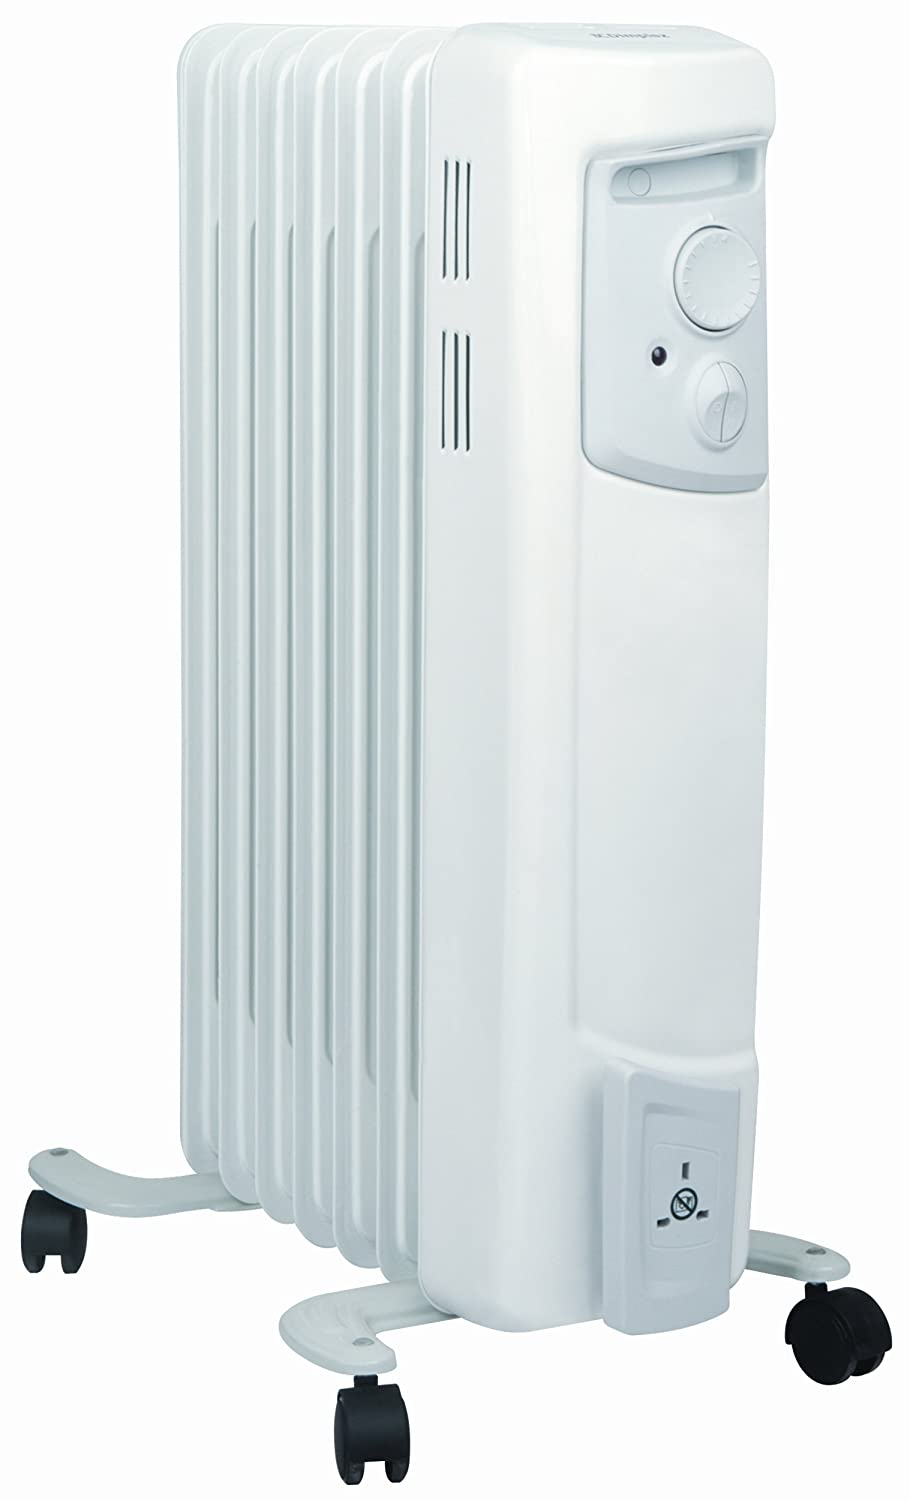 Dimplex 1.5 KW Electric Oil Filled Column Radiator [Energy Class A] Glen/dimplex OFC1500 Heating Solutions Portable Heaters